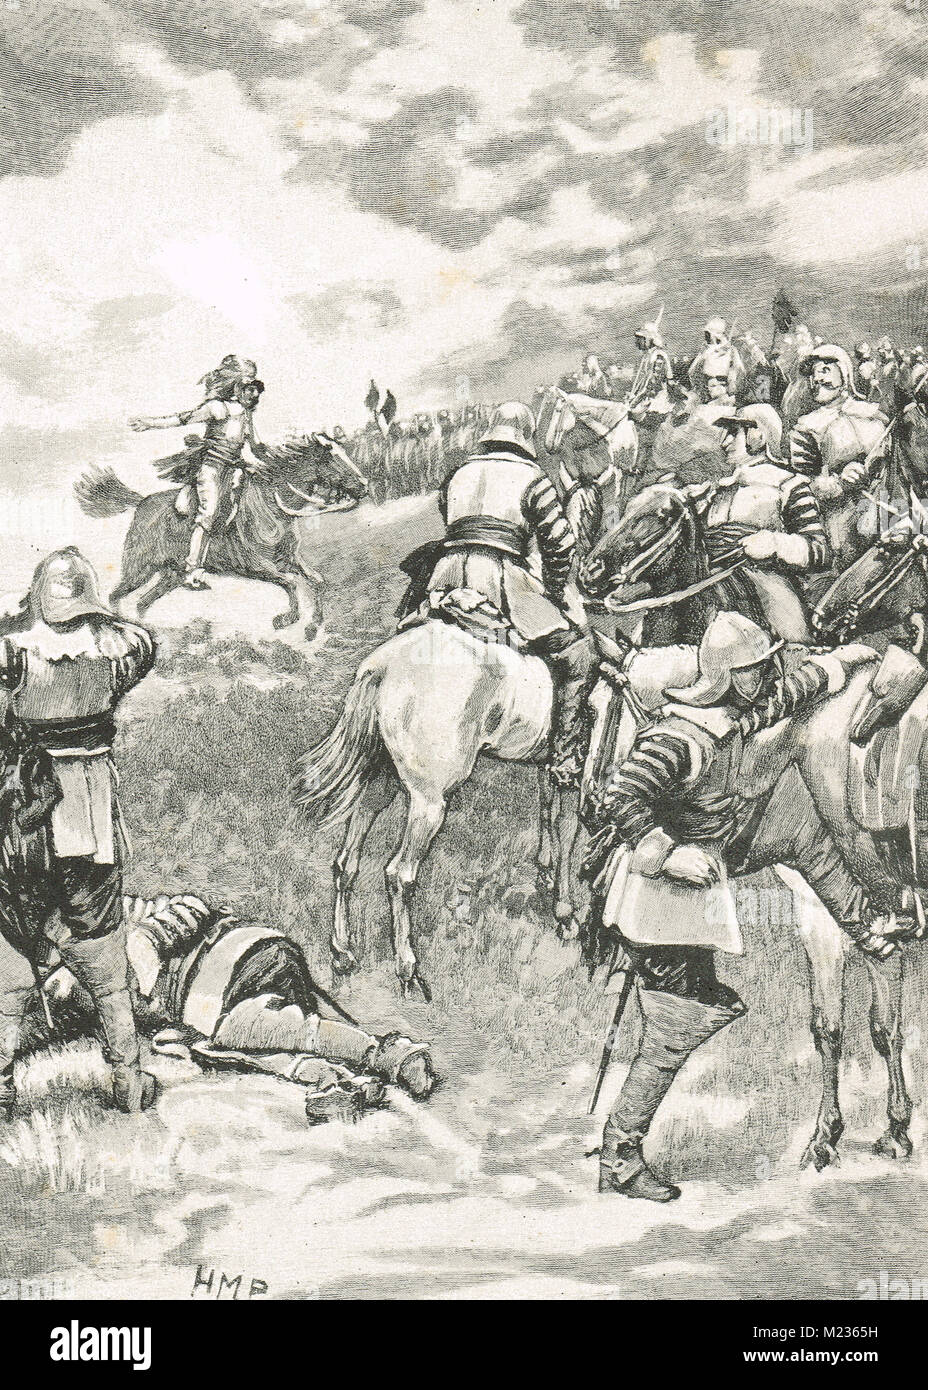 Charles I, trying to rally his army, Battle of Naseby, 14 June 1645 - Stock Image